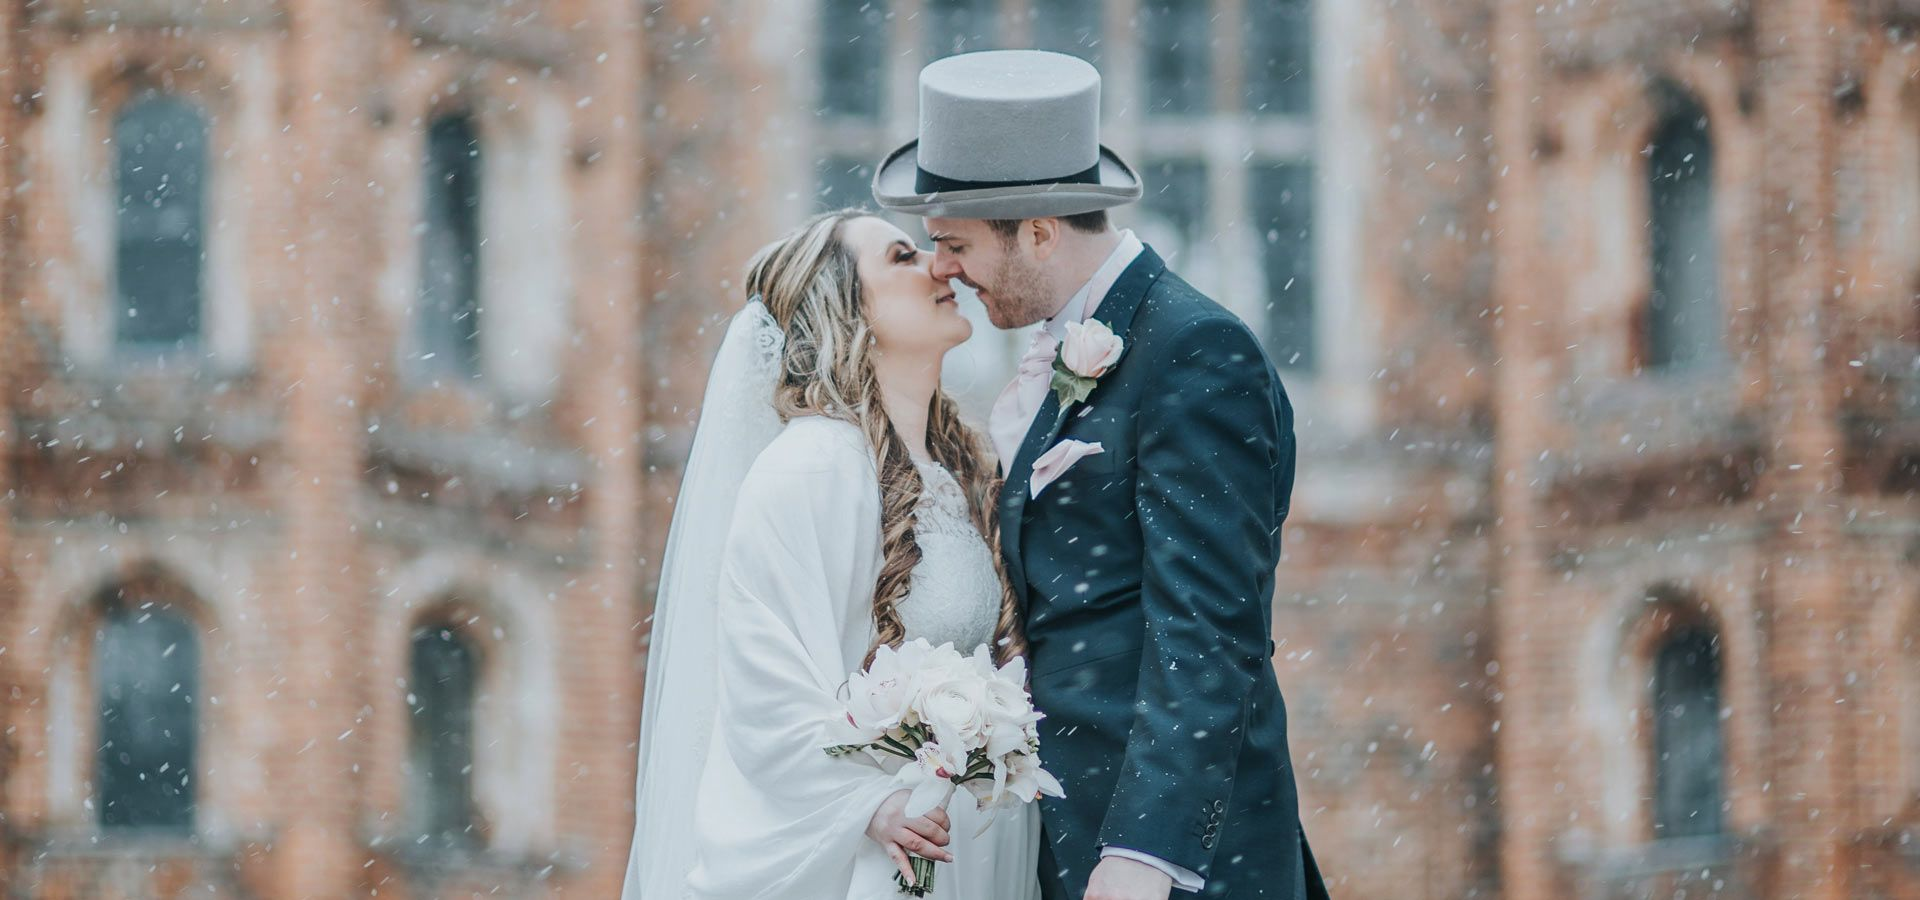 how much does a wedding cost on average, How Much Will My Wedding Cost?, Layer Marney Tower Weddings